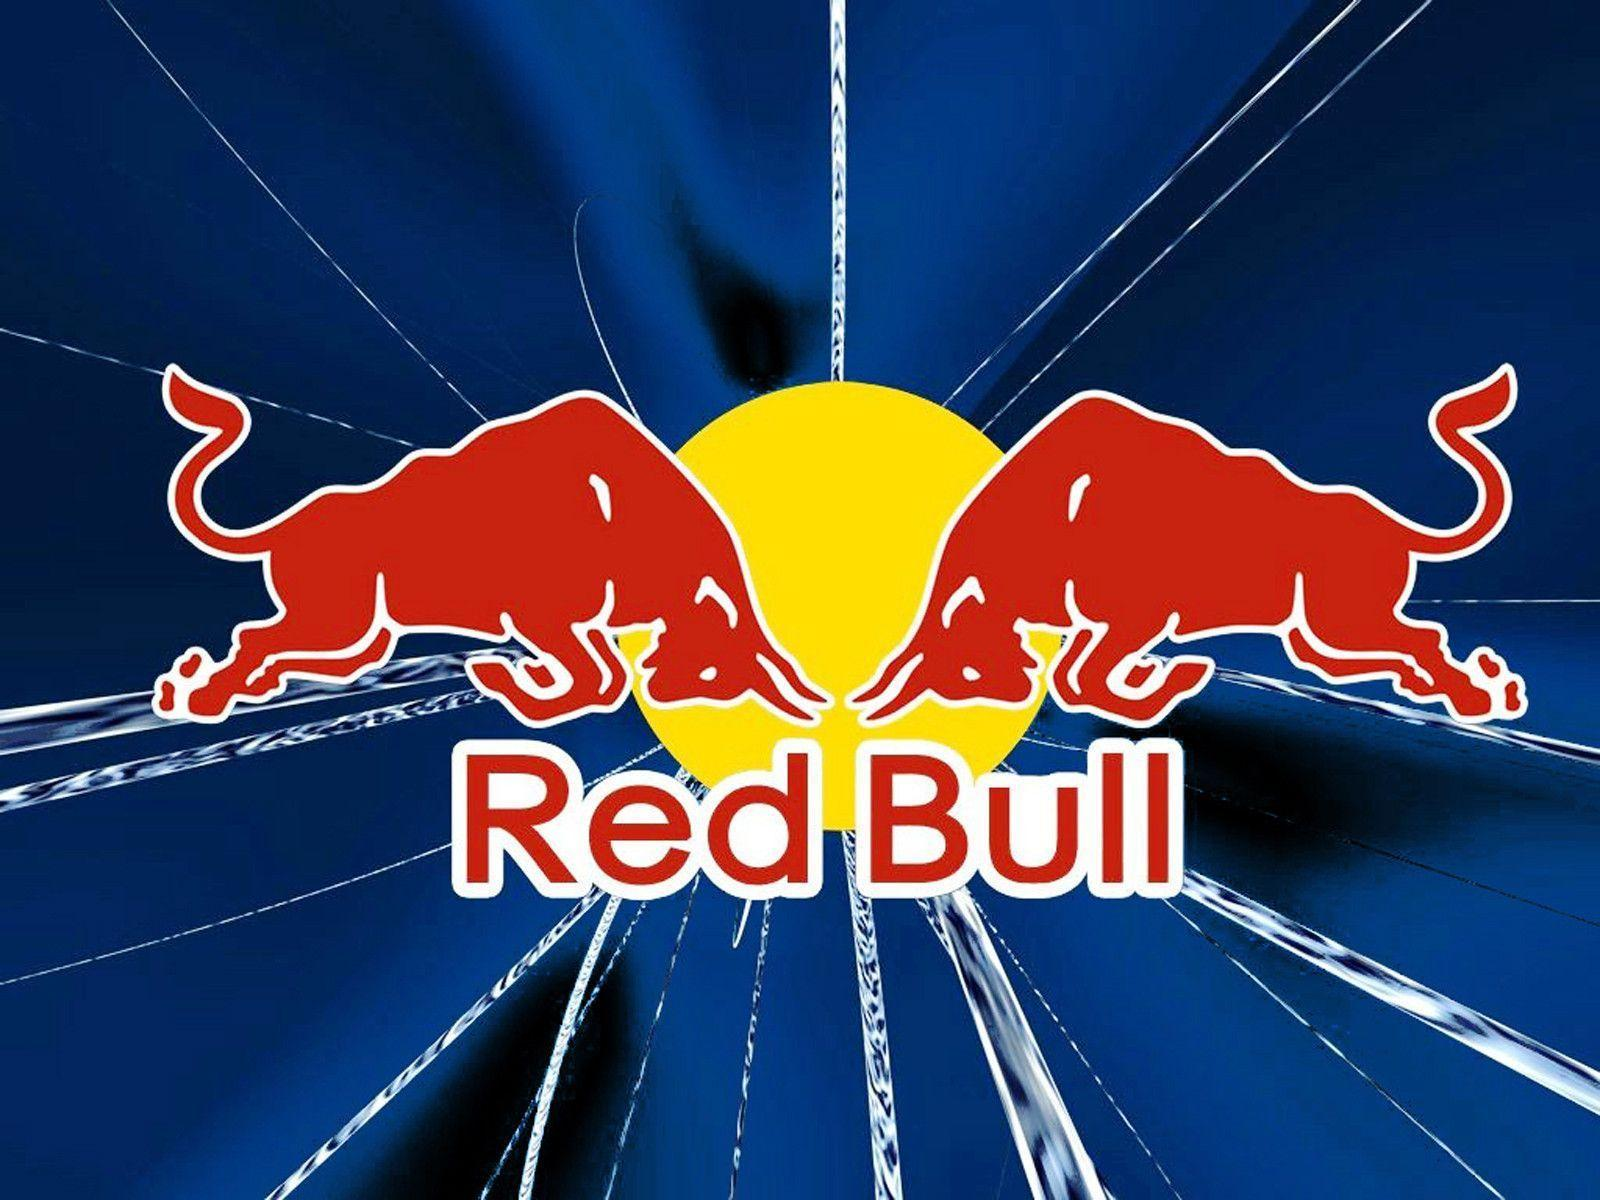 Red Bull HD Logo Wallpapers Download Free Wallpapers in HD for